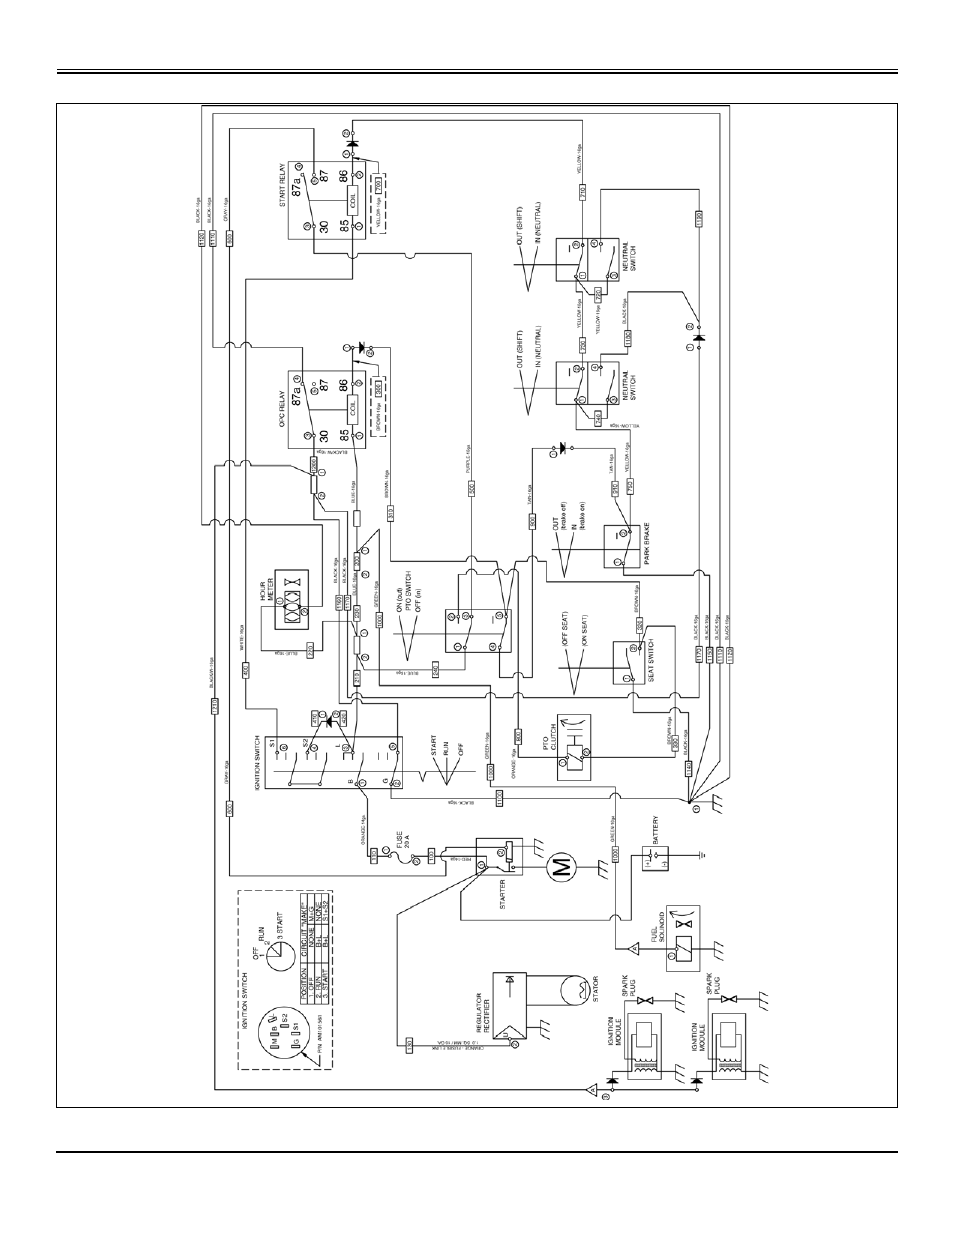 Service electrical | Great Dane Chariot Brutus GBKW2552S User Manual | Page  44 / 86